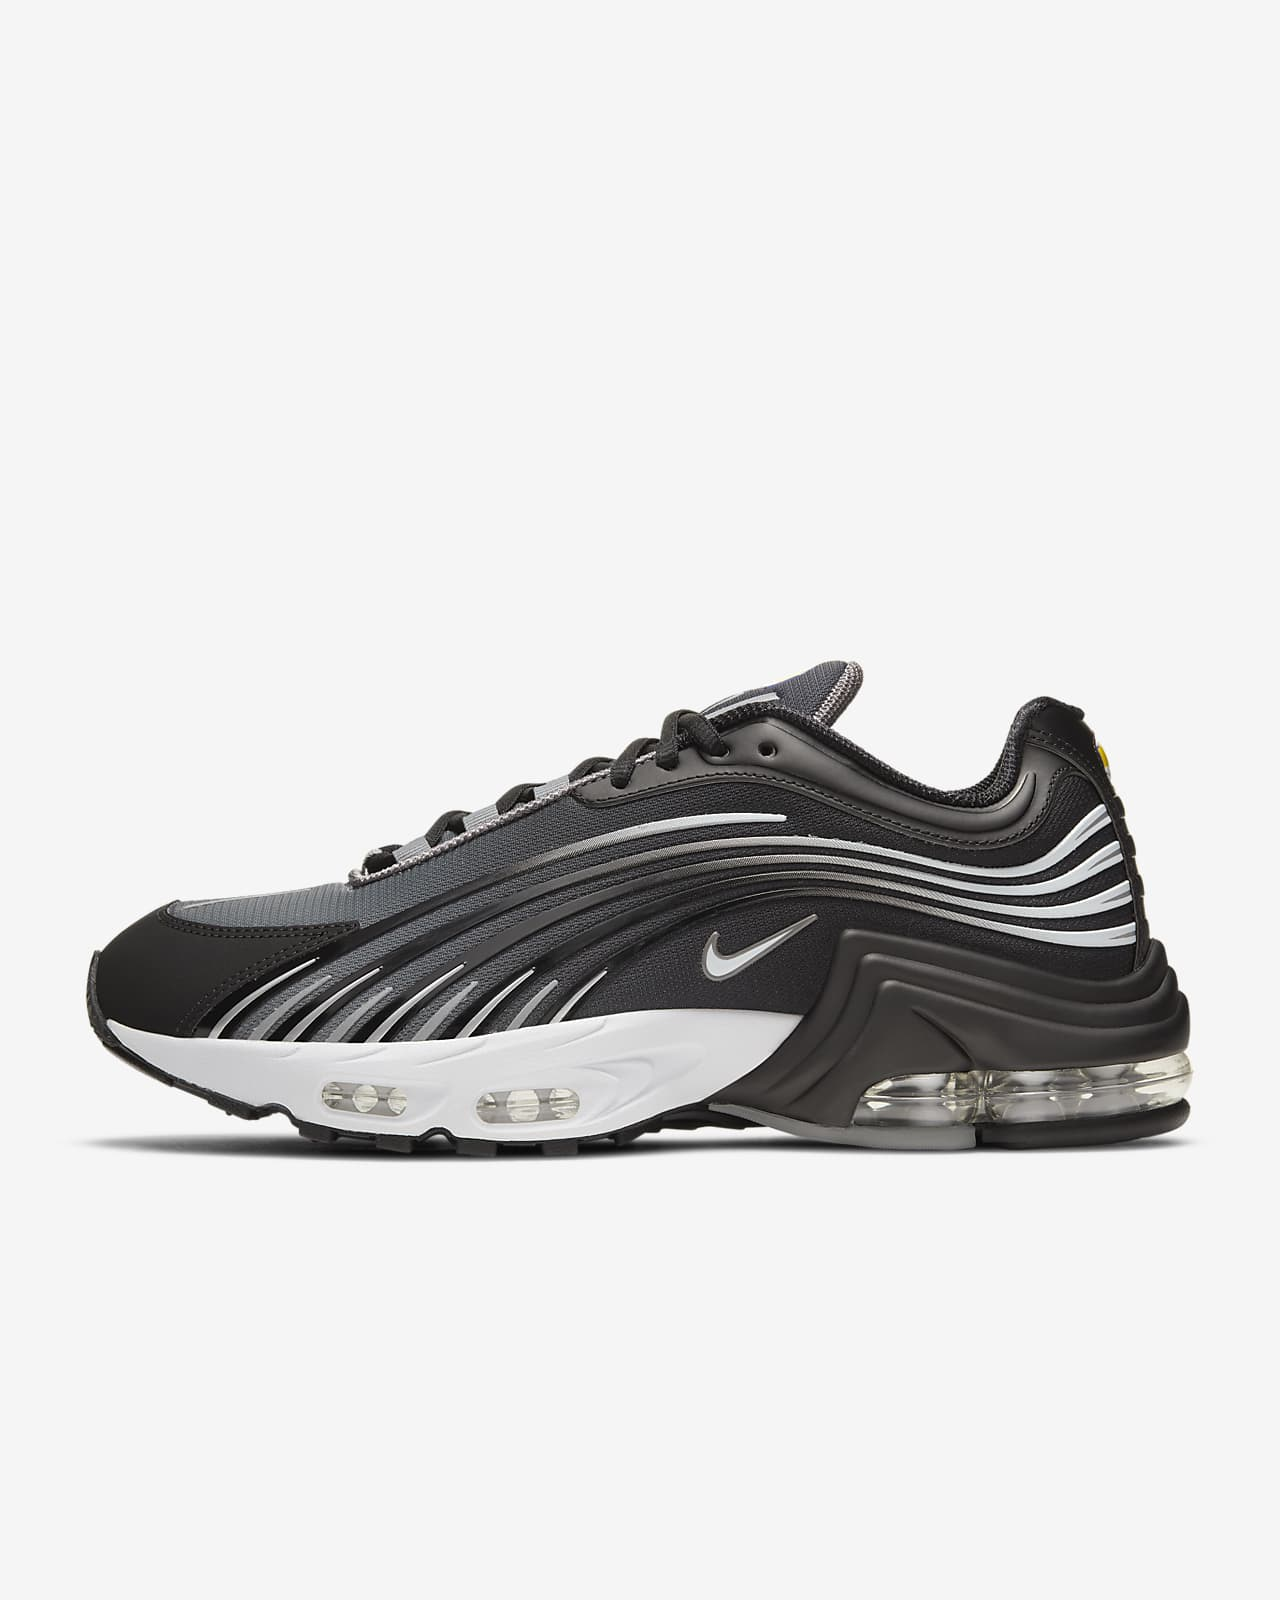 Nike Air Max Plus II Men's Shoe